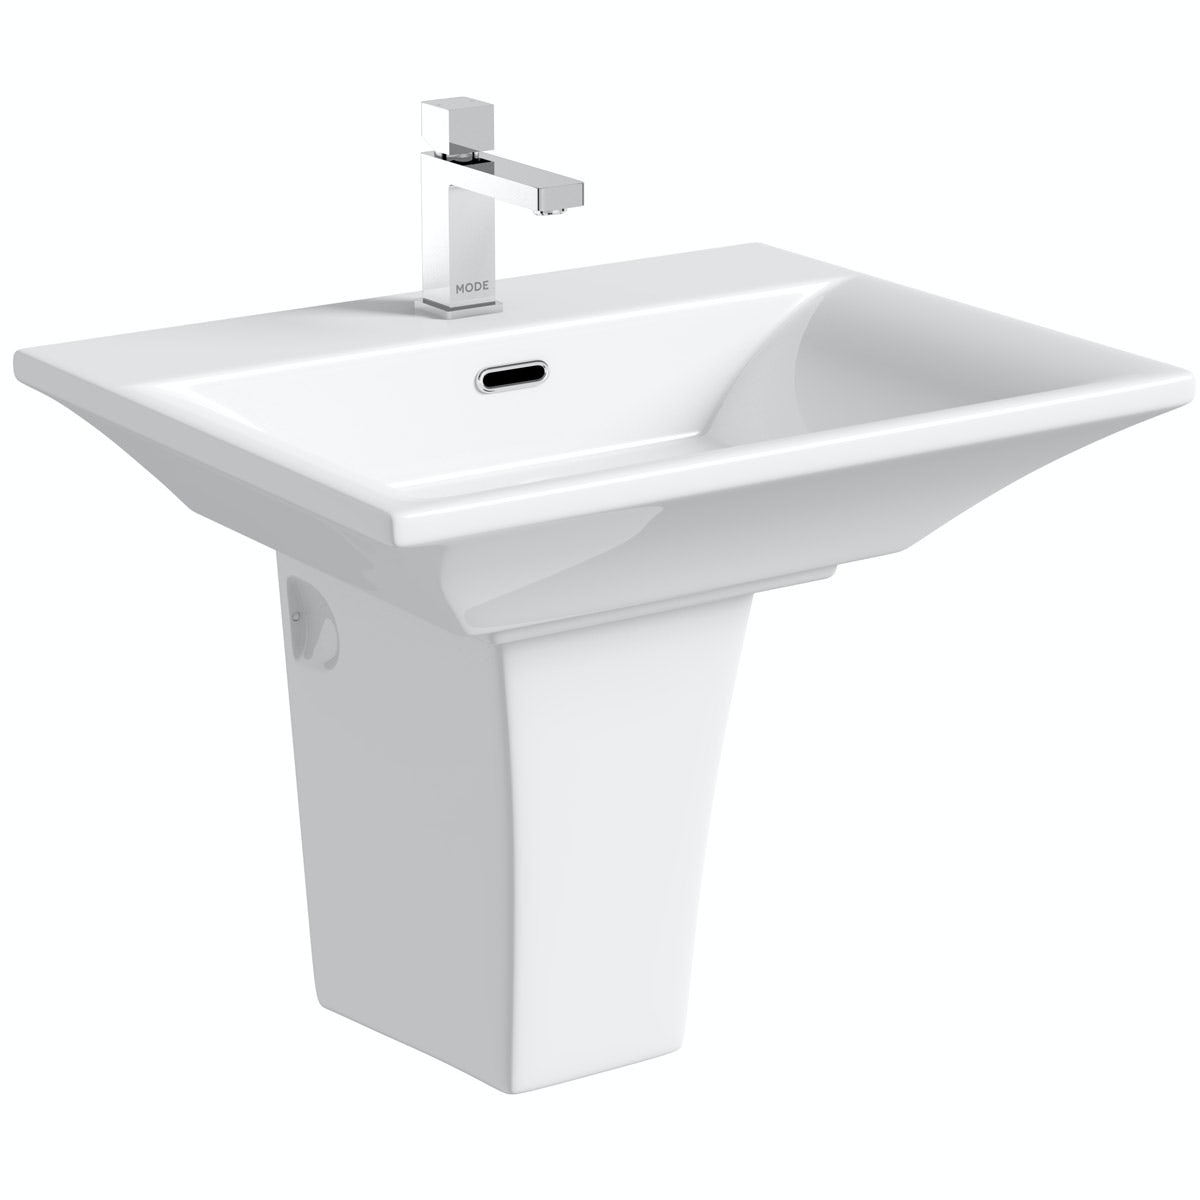 Mode Austin 1 tap hole semi pedestal basin 600mm